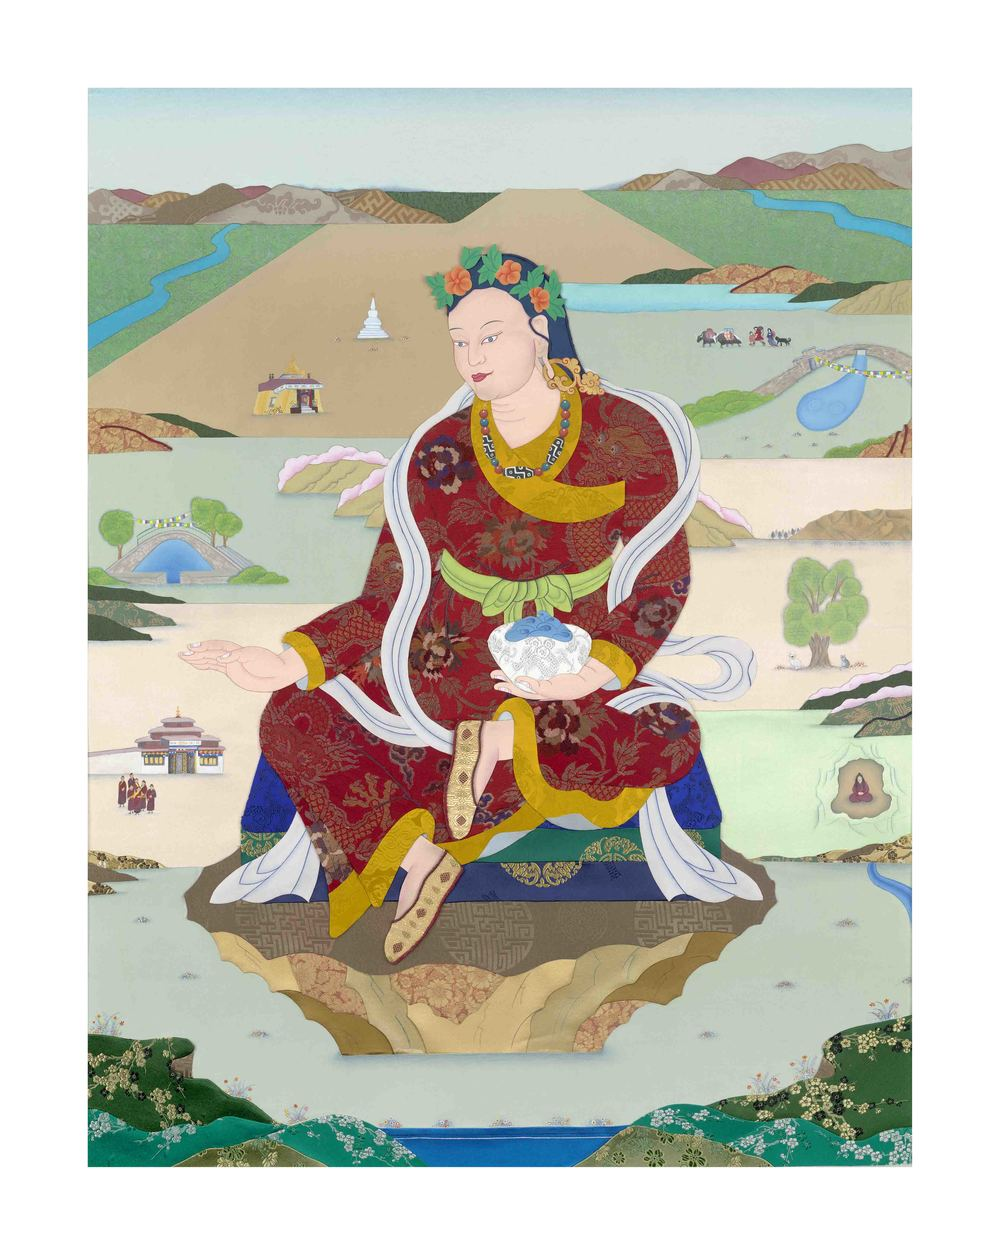 Khandro Yeshe Tsogyal at her birthplace, Tsogyal Latso. Applique thangka by artist Leslie Nguyen Temple commissioned by Jnanasukha Foundation. Digital prints available for purchase.